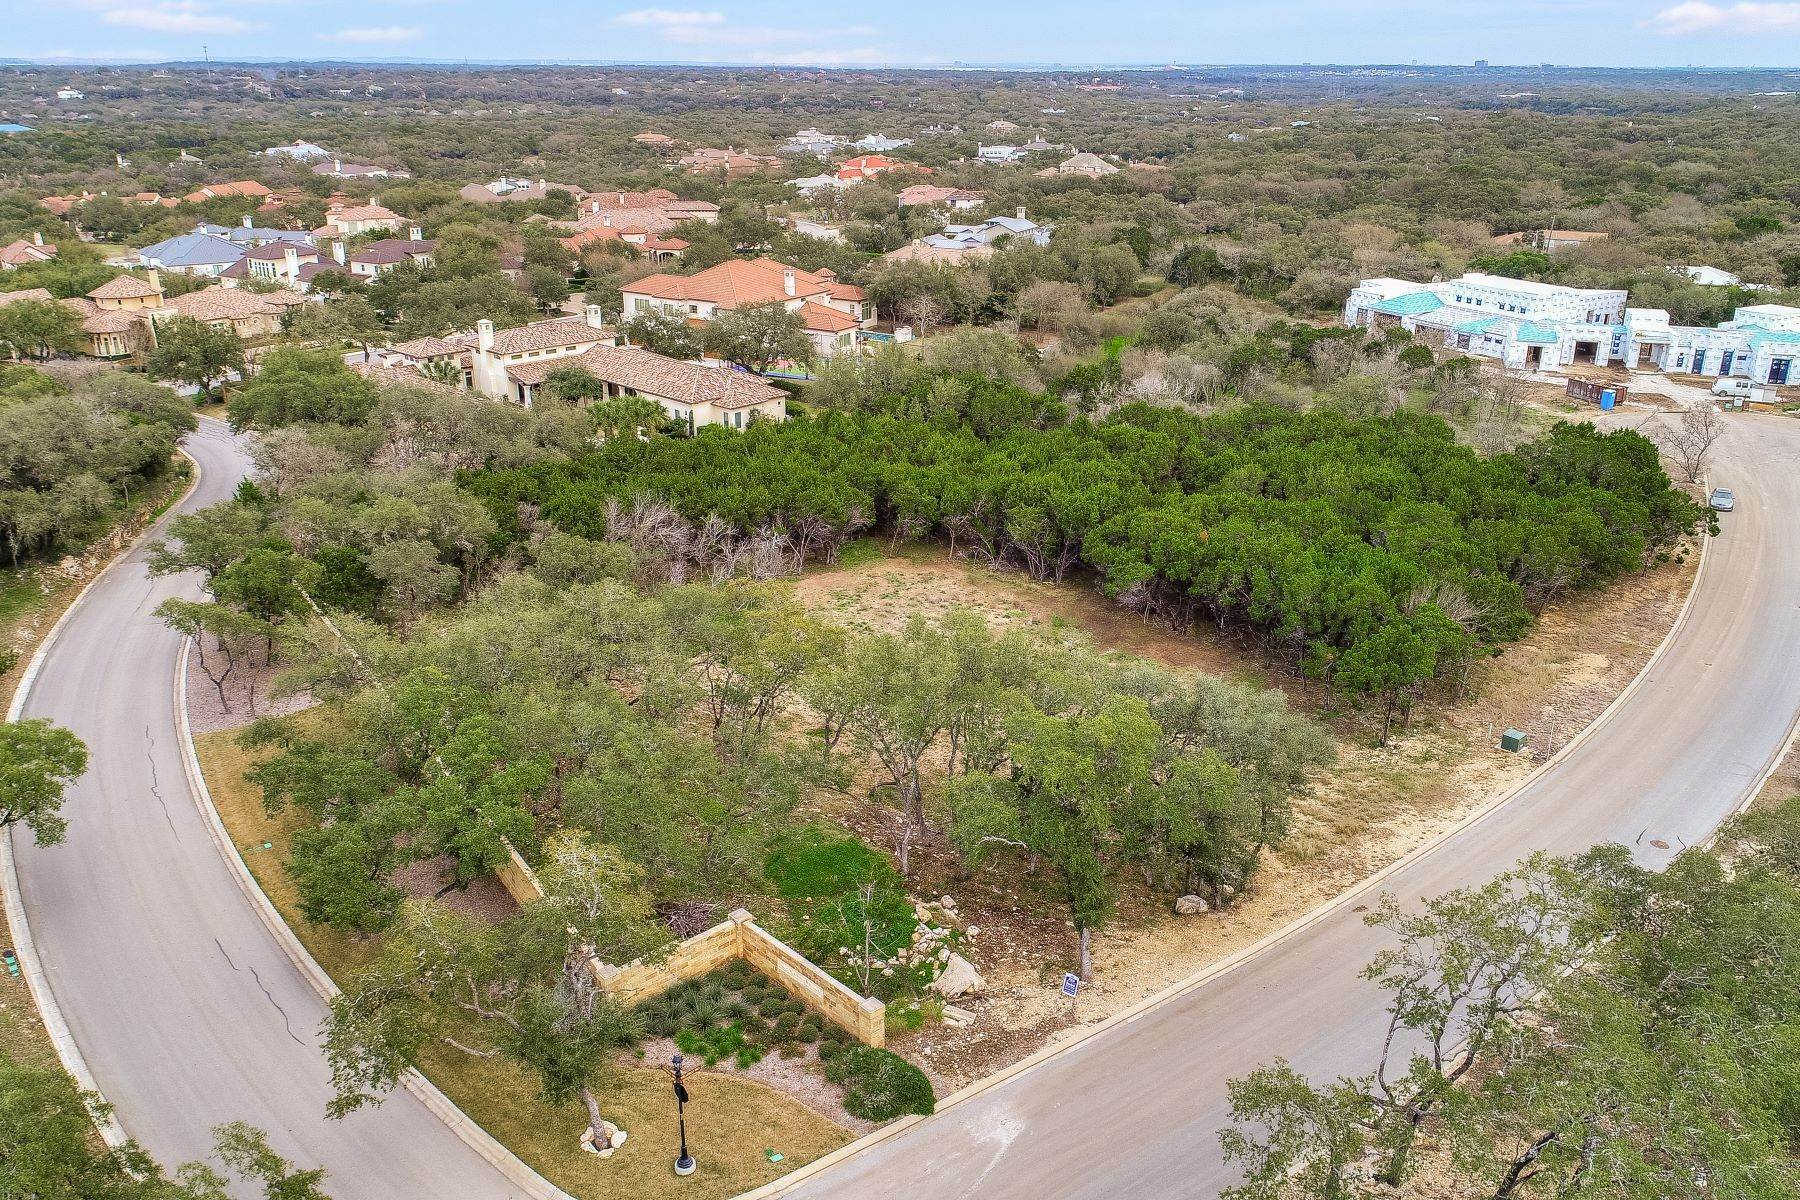 Property for Sale at 218 Wellesley Hill, Shavano Park, TX 78231 218 Wellesley Hill Shavano Park, Texas 78231 United States